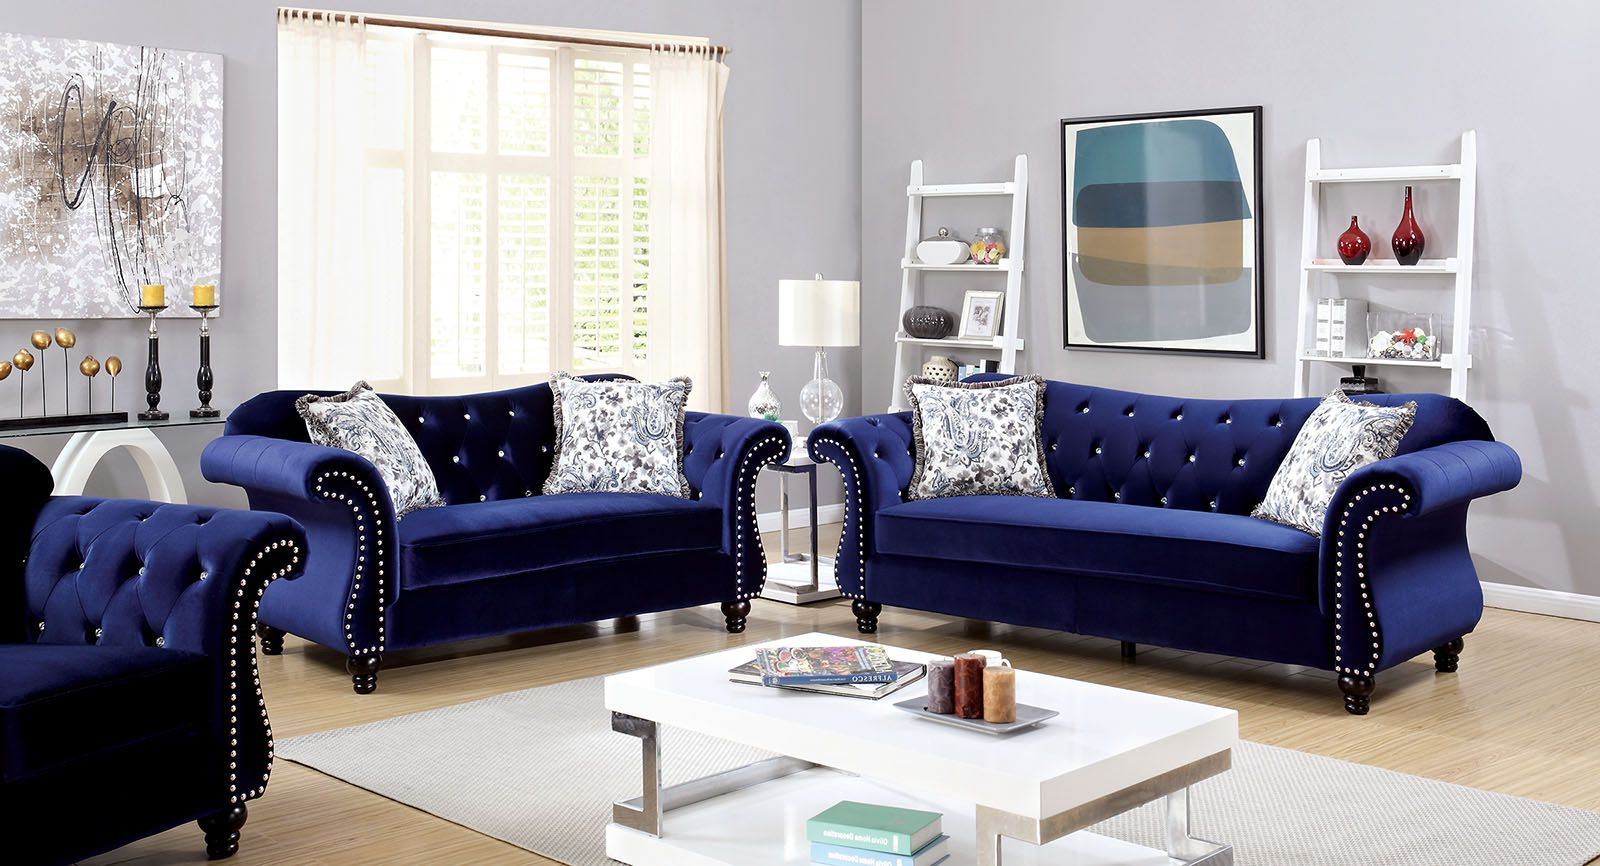 Newest Furniture Of America Jolanda Blue Flannelette Fabric Intended For Molnar Upholstered Sectional Sofas Blue/gray (View 14 of 20)